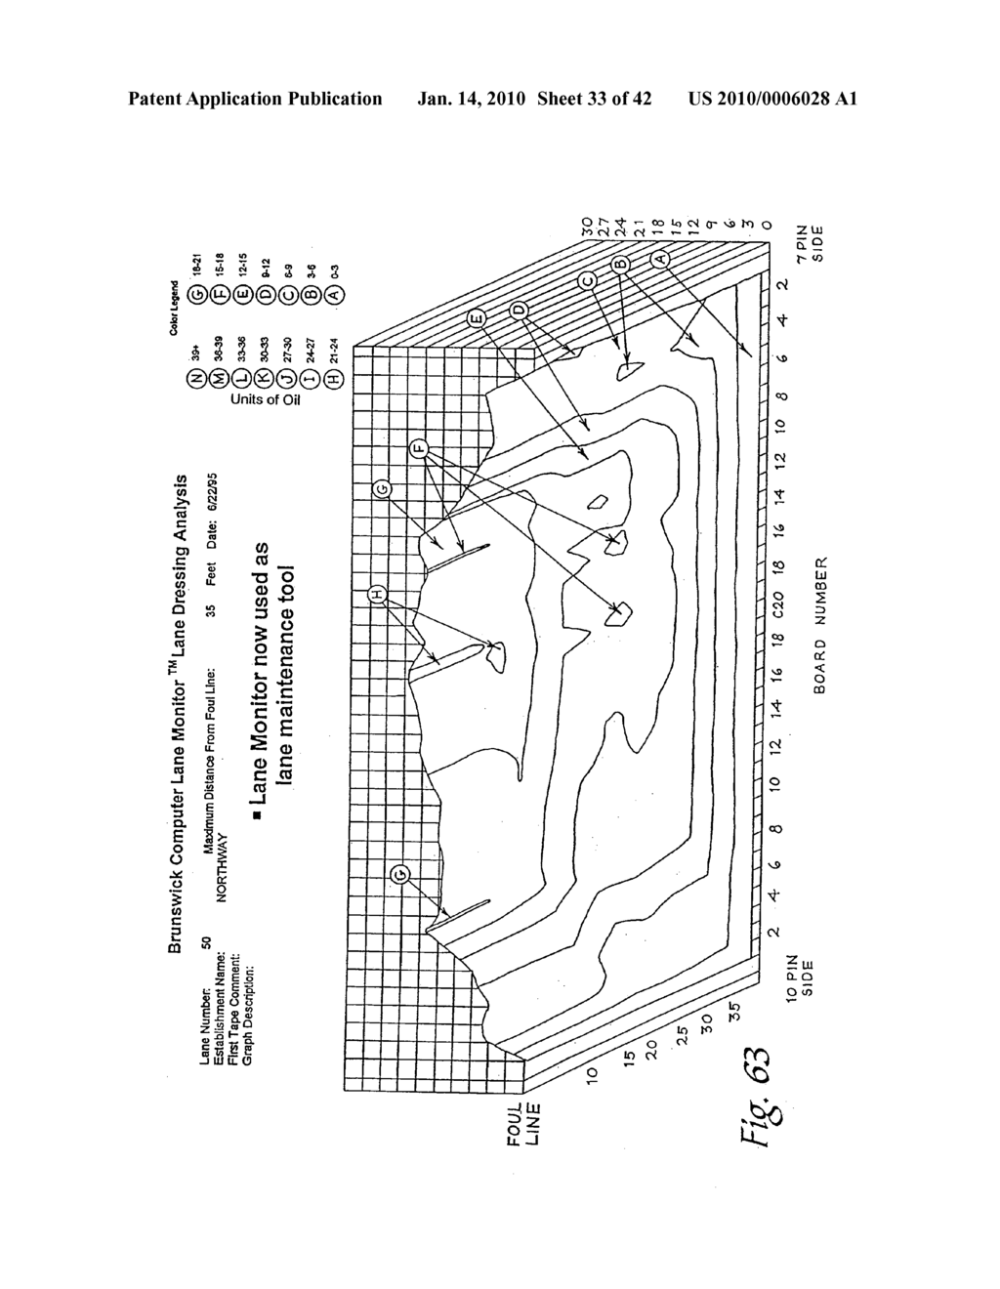 medium resolution of apparatus and method for conditioning a bowling lane using precision delivery injectors diagram schematic and image 34